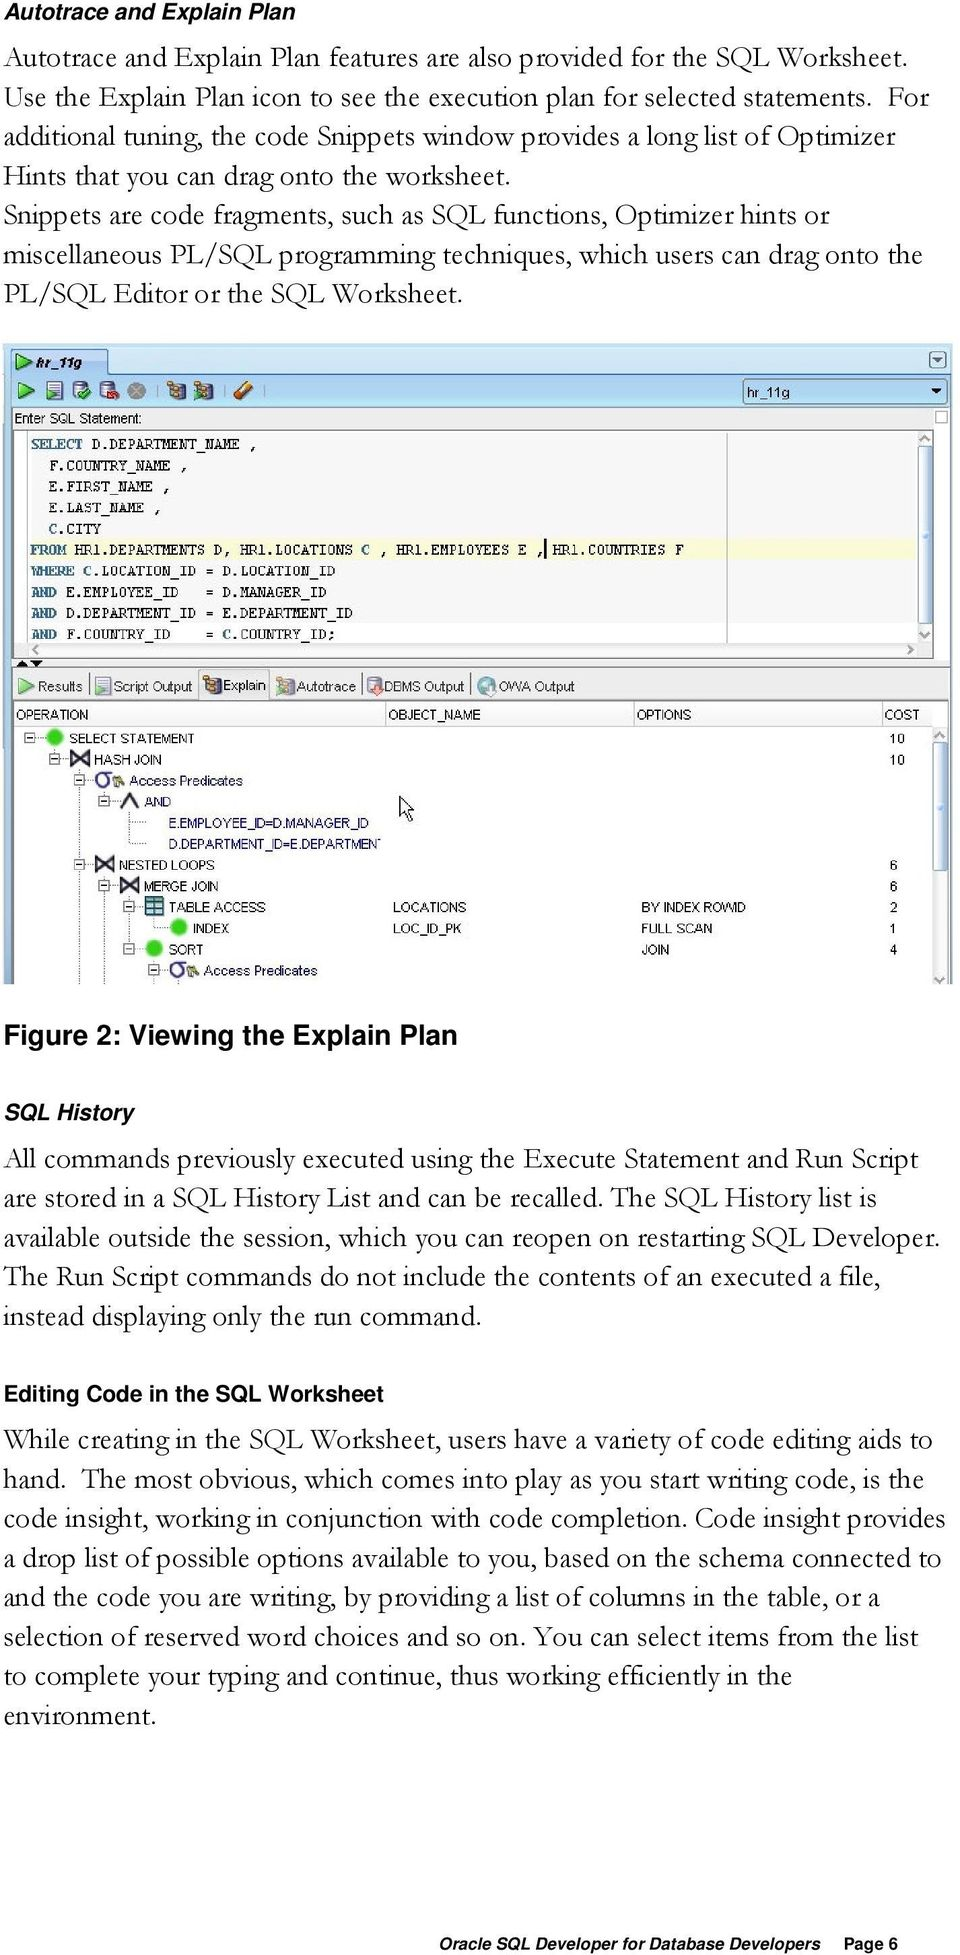 Snippets are code fragments, such as SQL functions, Optimizer hints or miscellaneous PL/SQL programming techniques, which users can drag onto the PL/SQL Editor or the SQL Worksheet.